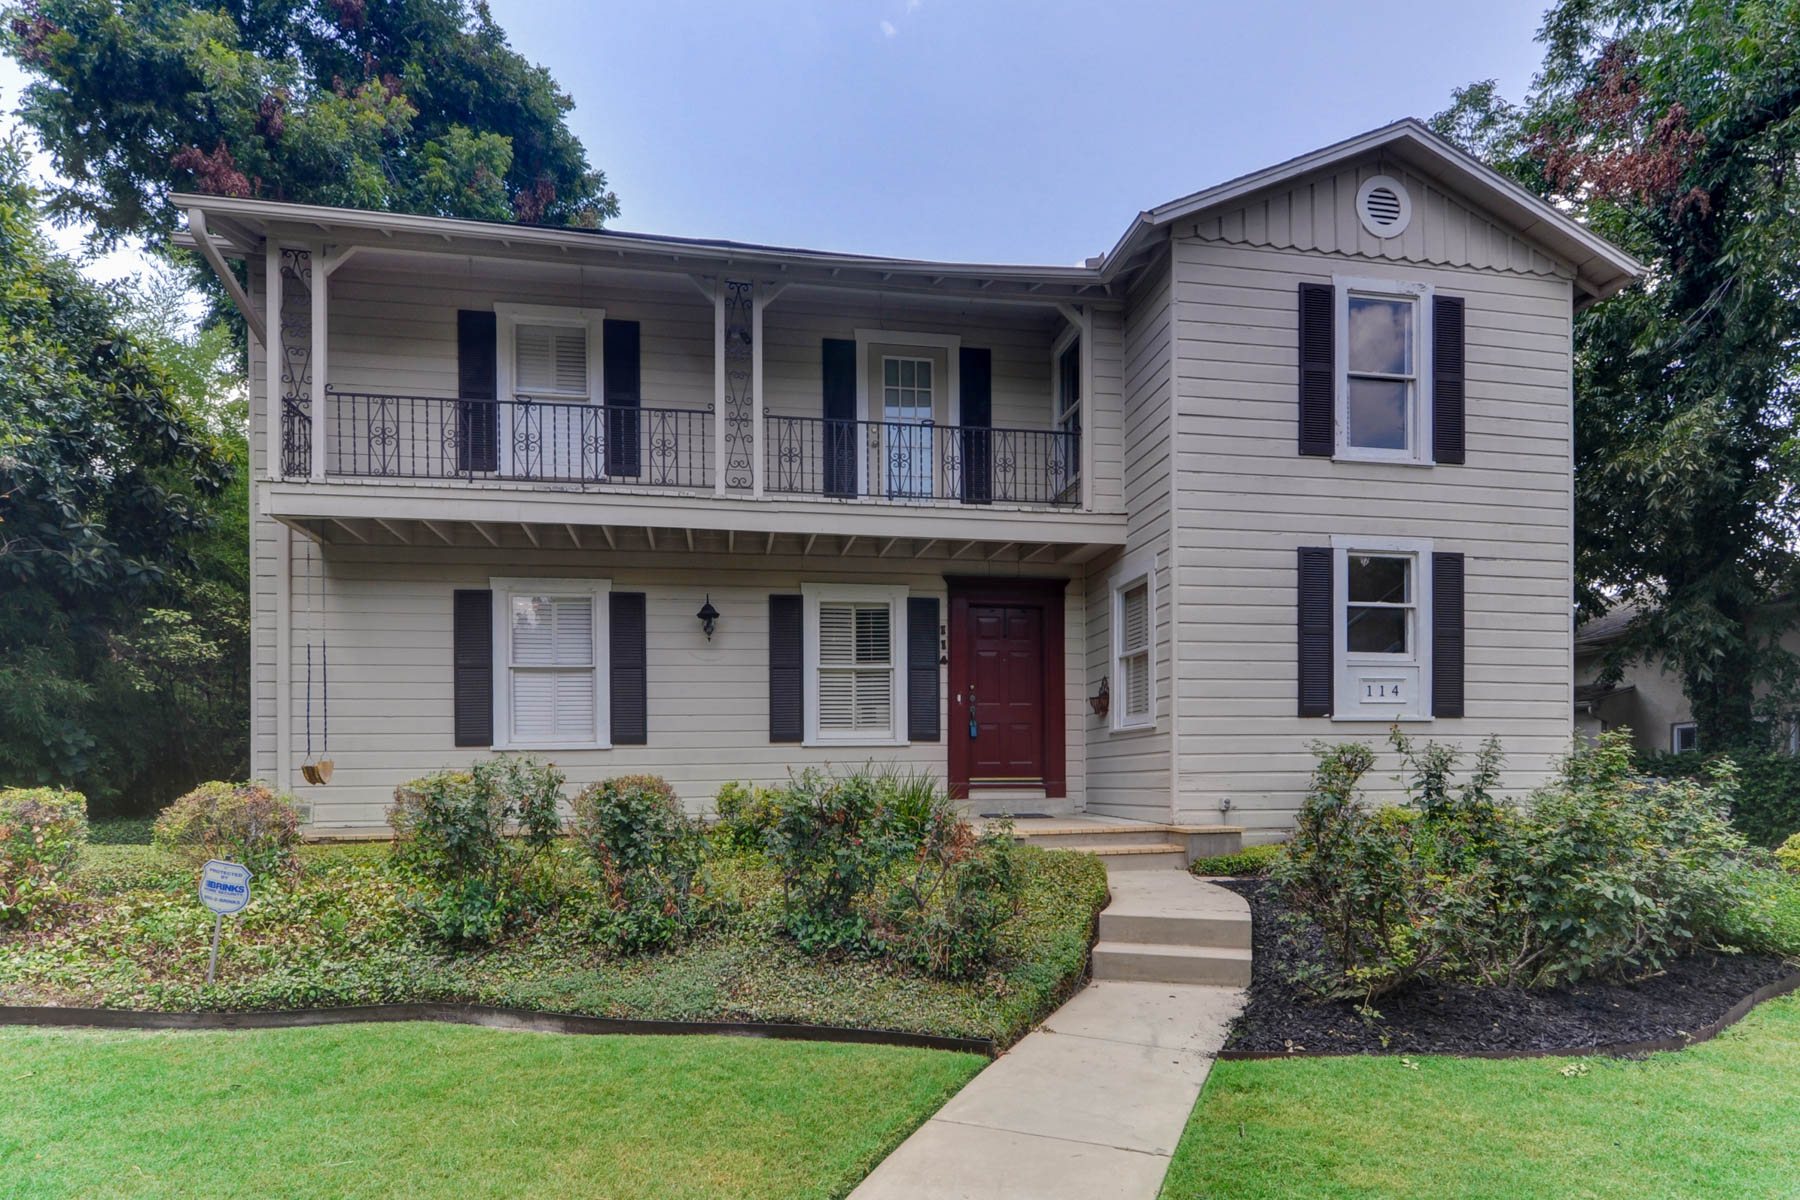 Single Family Home for Sale at Beautiful 1940's Colonial Stye Home 114 Cloverleaf Ave Alamo Heights, San Antonio, Texas 78209 United States